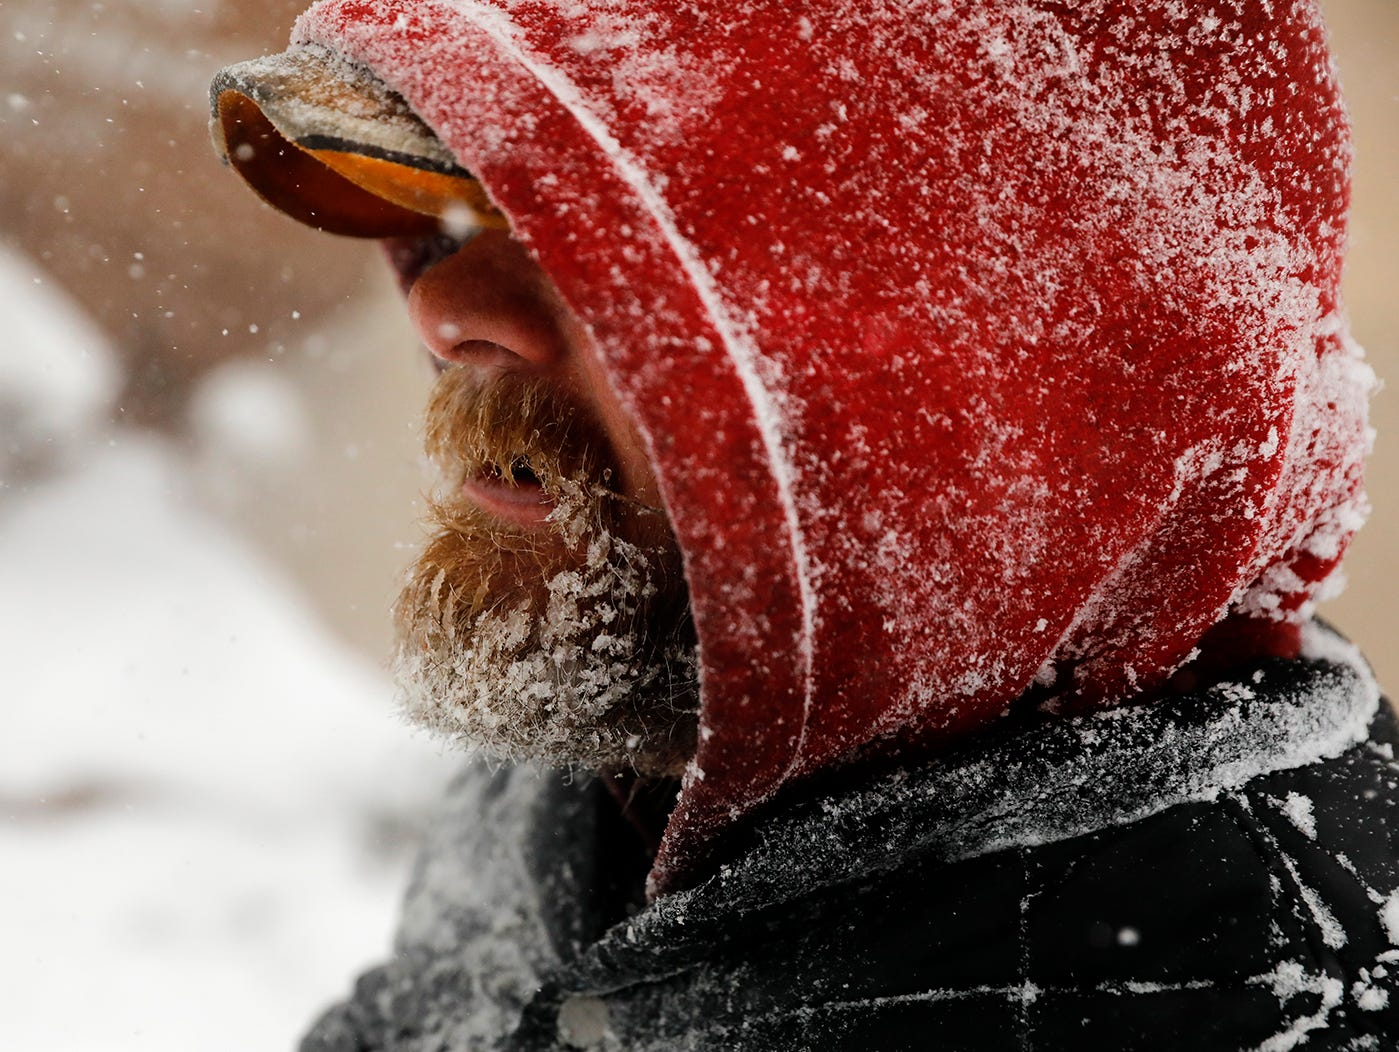 Joe Miller's beard freezes over as he walks through downtown Casper, Wyo., during a winter storm March 13, 2019. The storm brought blizzard conditions to parts of Colorado, Wyoming, Montana, Nebraska and South Dakota.